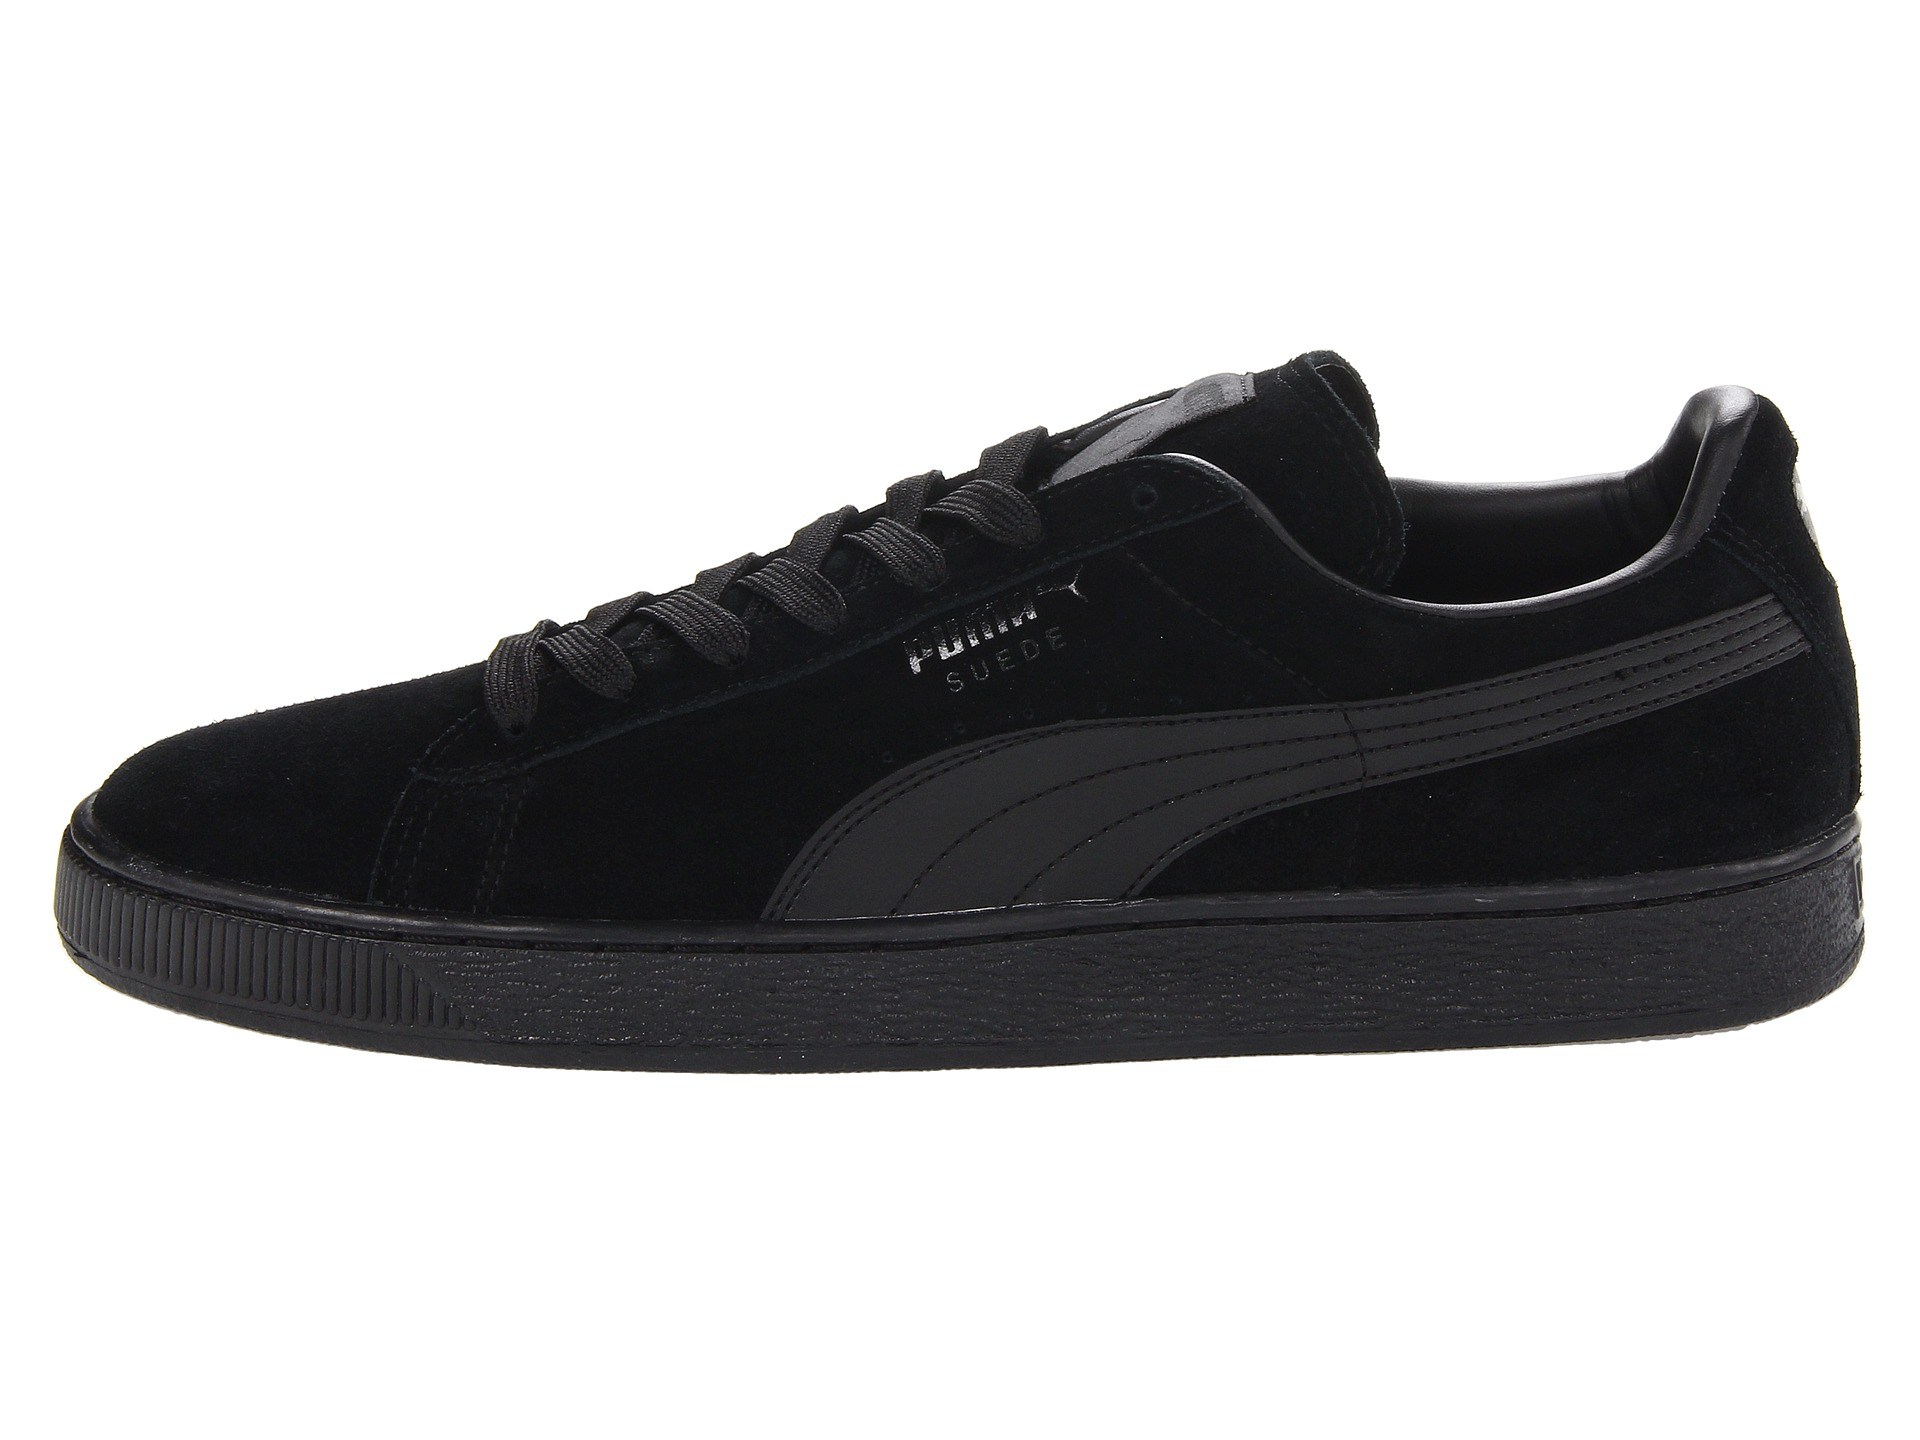 all black suede puma shoes